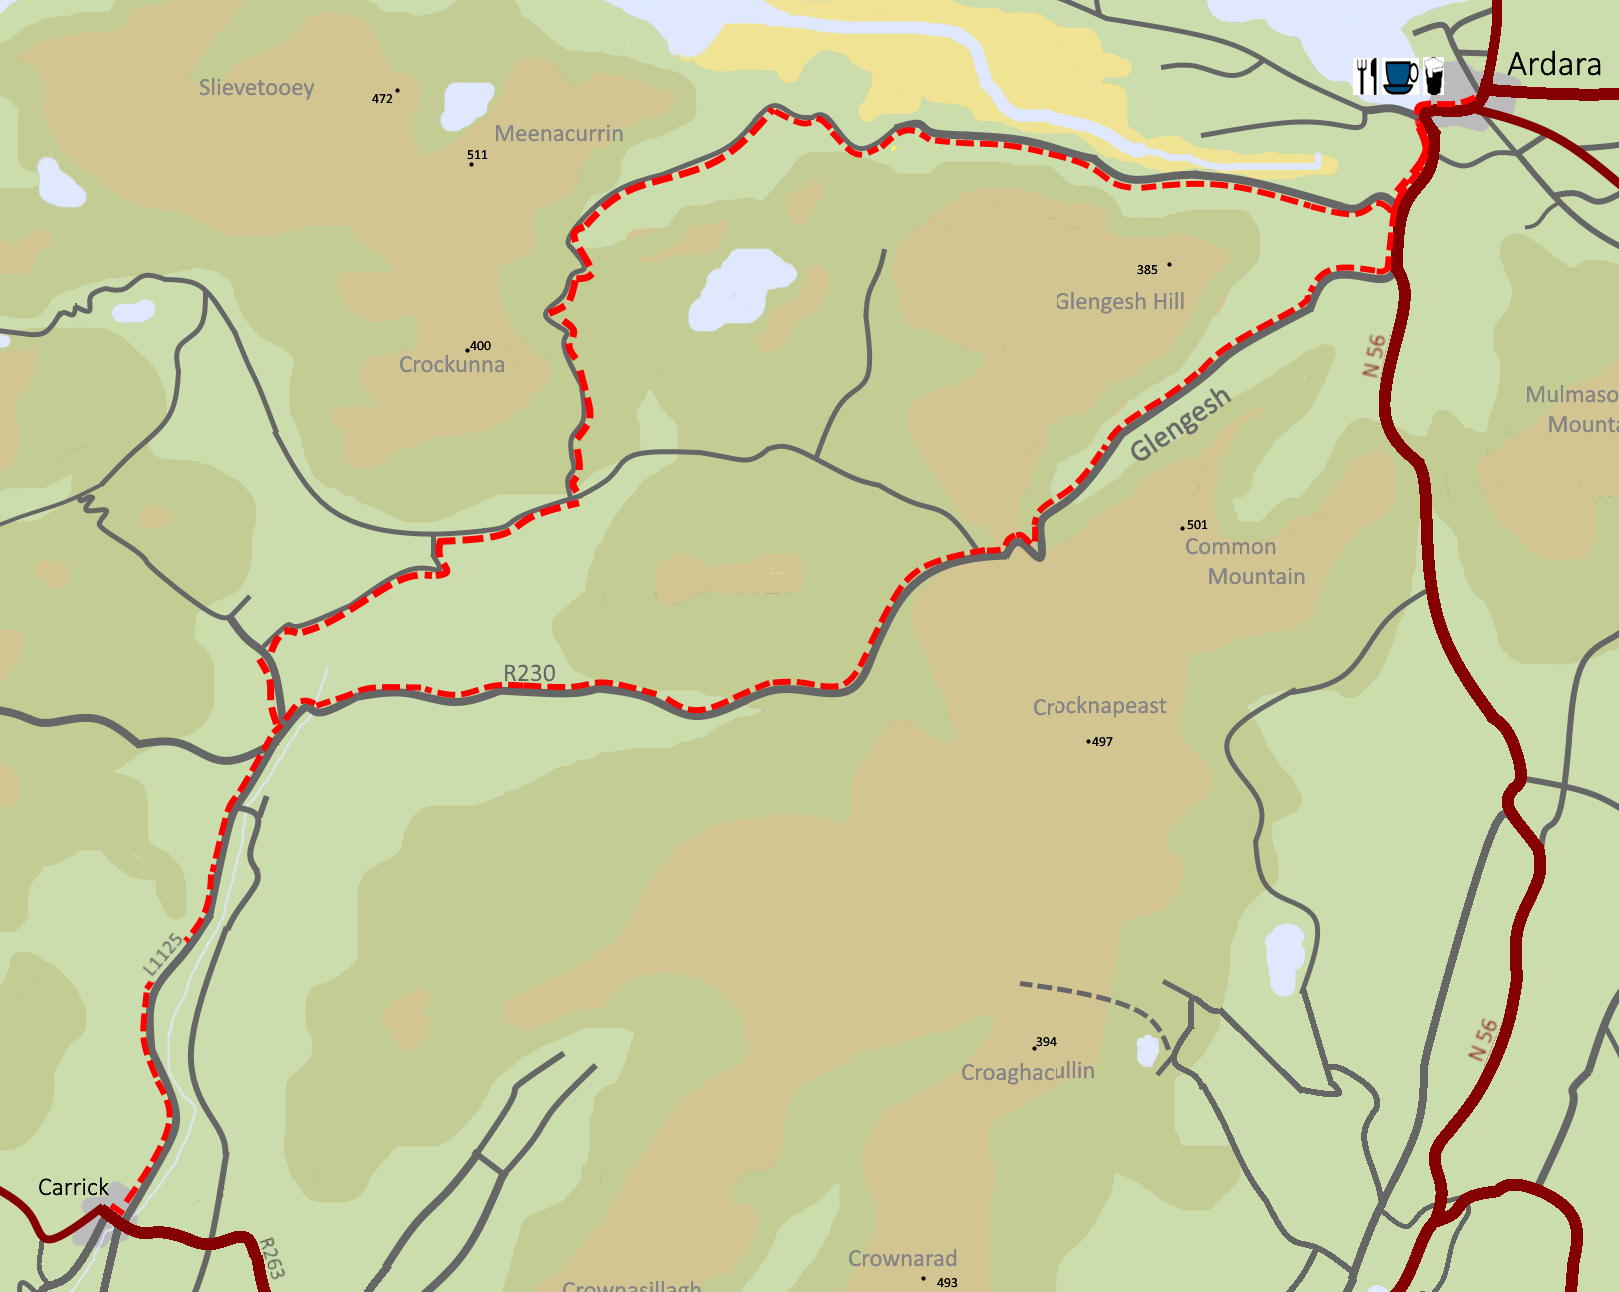 Map of a cycle route from Carrick to Ardara, Granny, and Glengesh Passes